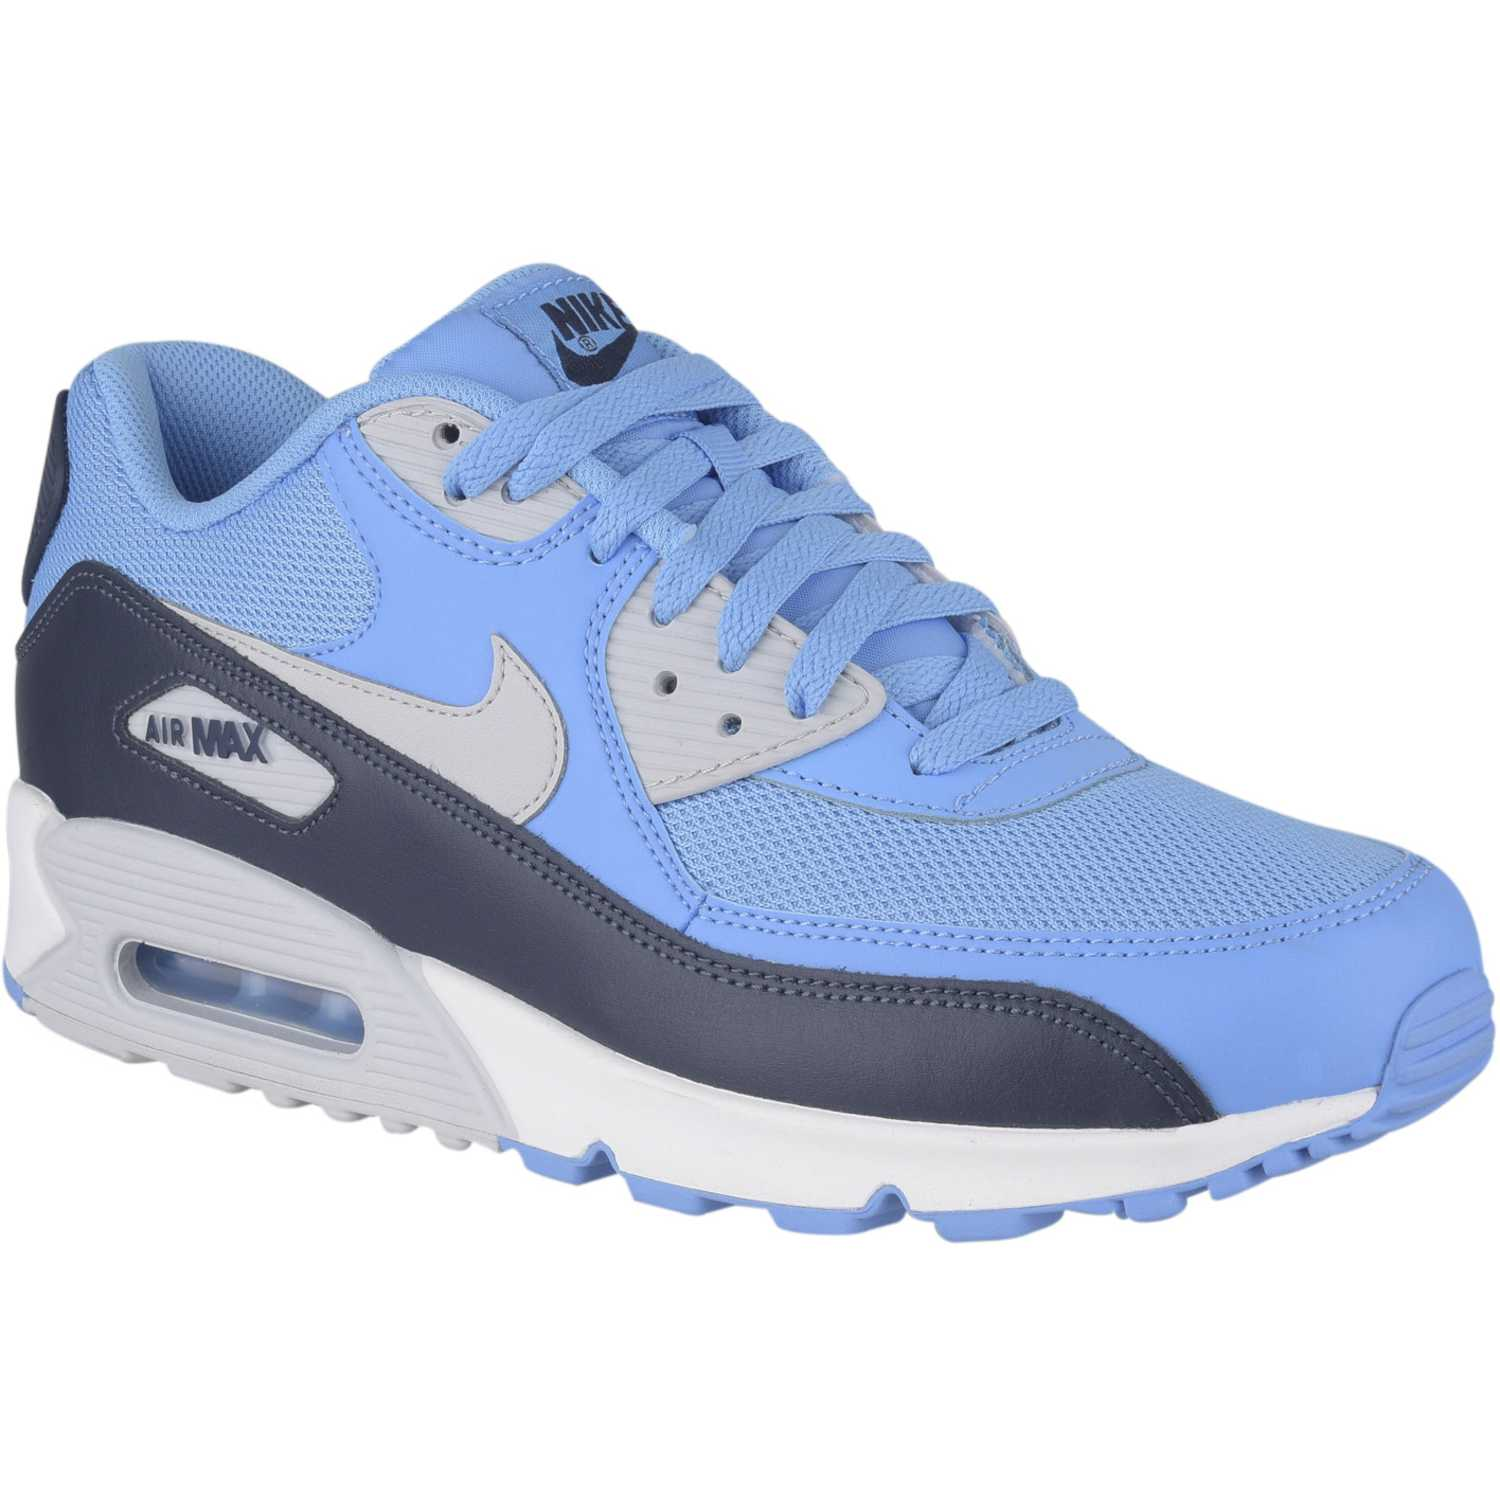 purchase hombres nike air max 90 azul 7d191 e0fa7